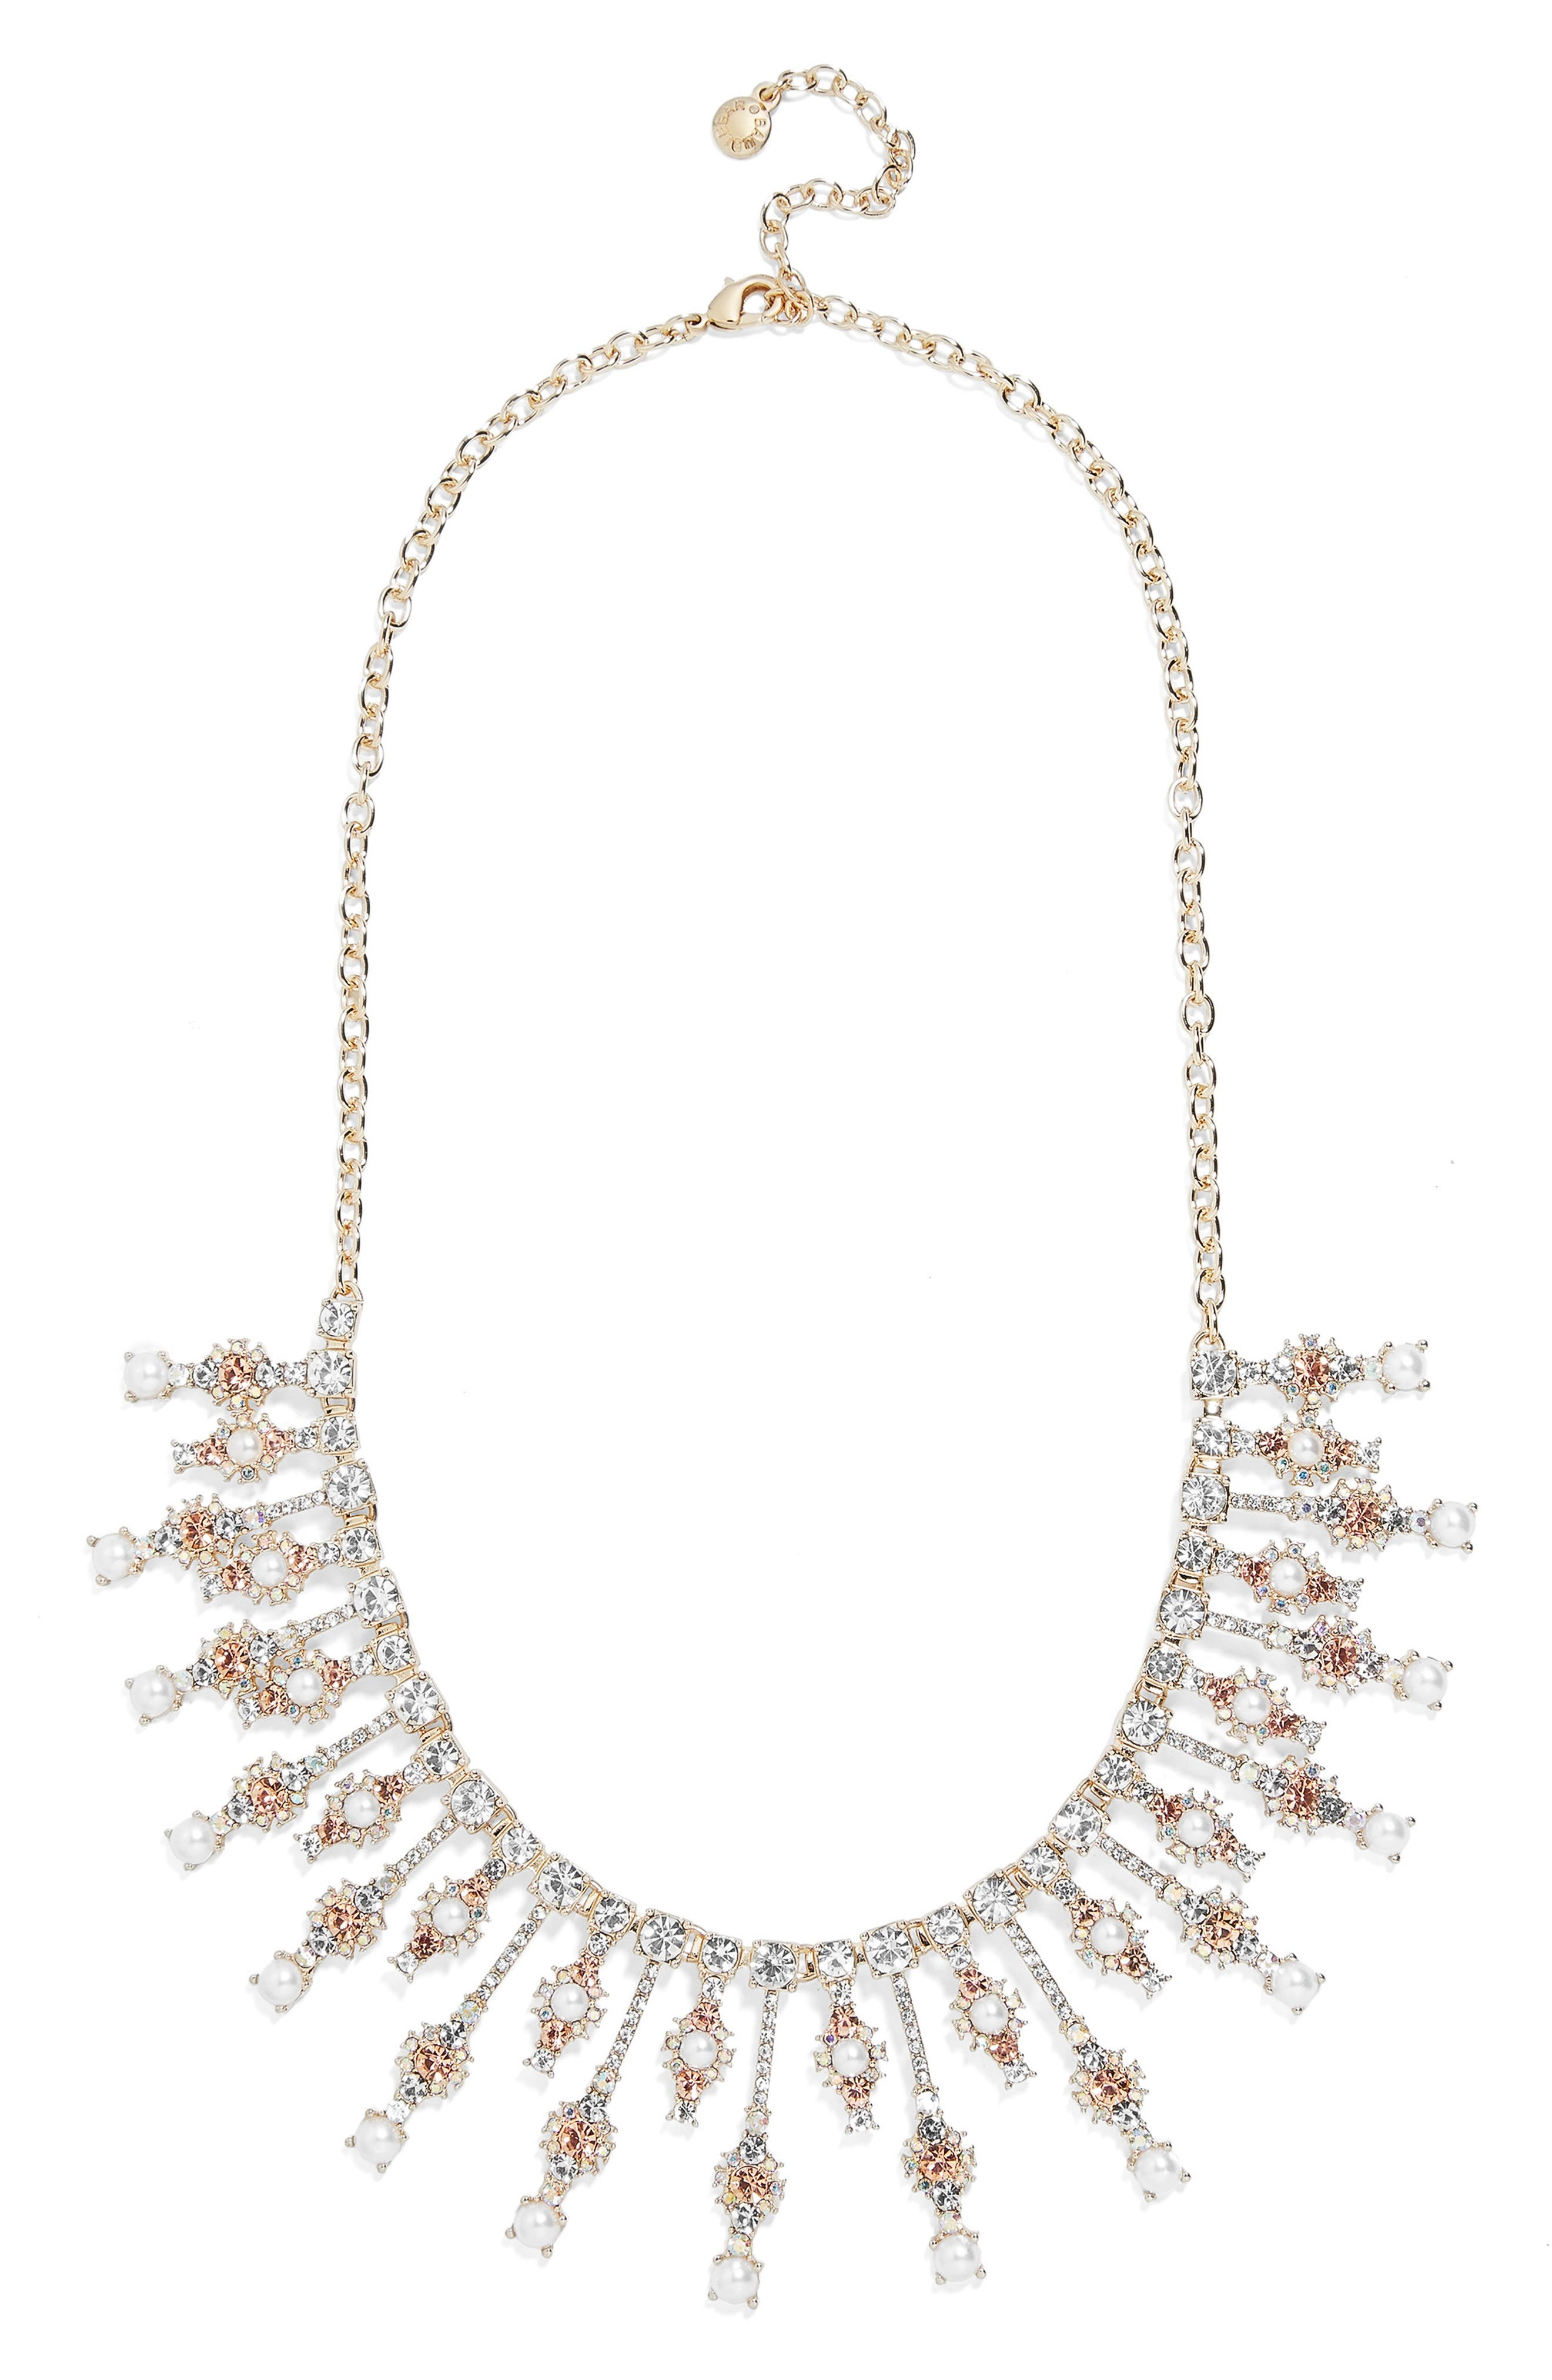 x Micaela Erlanger Roll Out the Red Carpet Statement Necklace,                         Main,                         color, GOLD